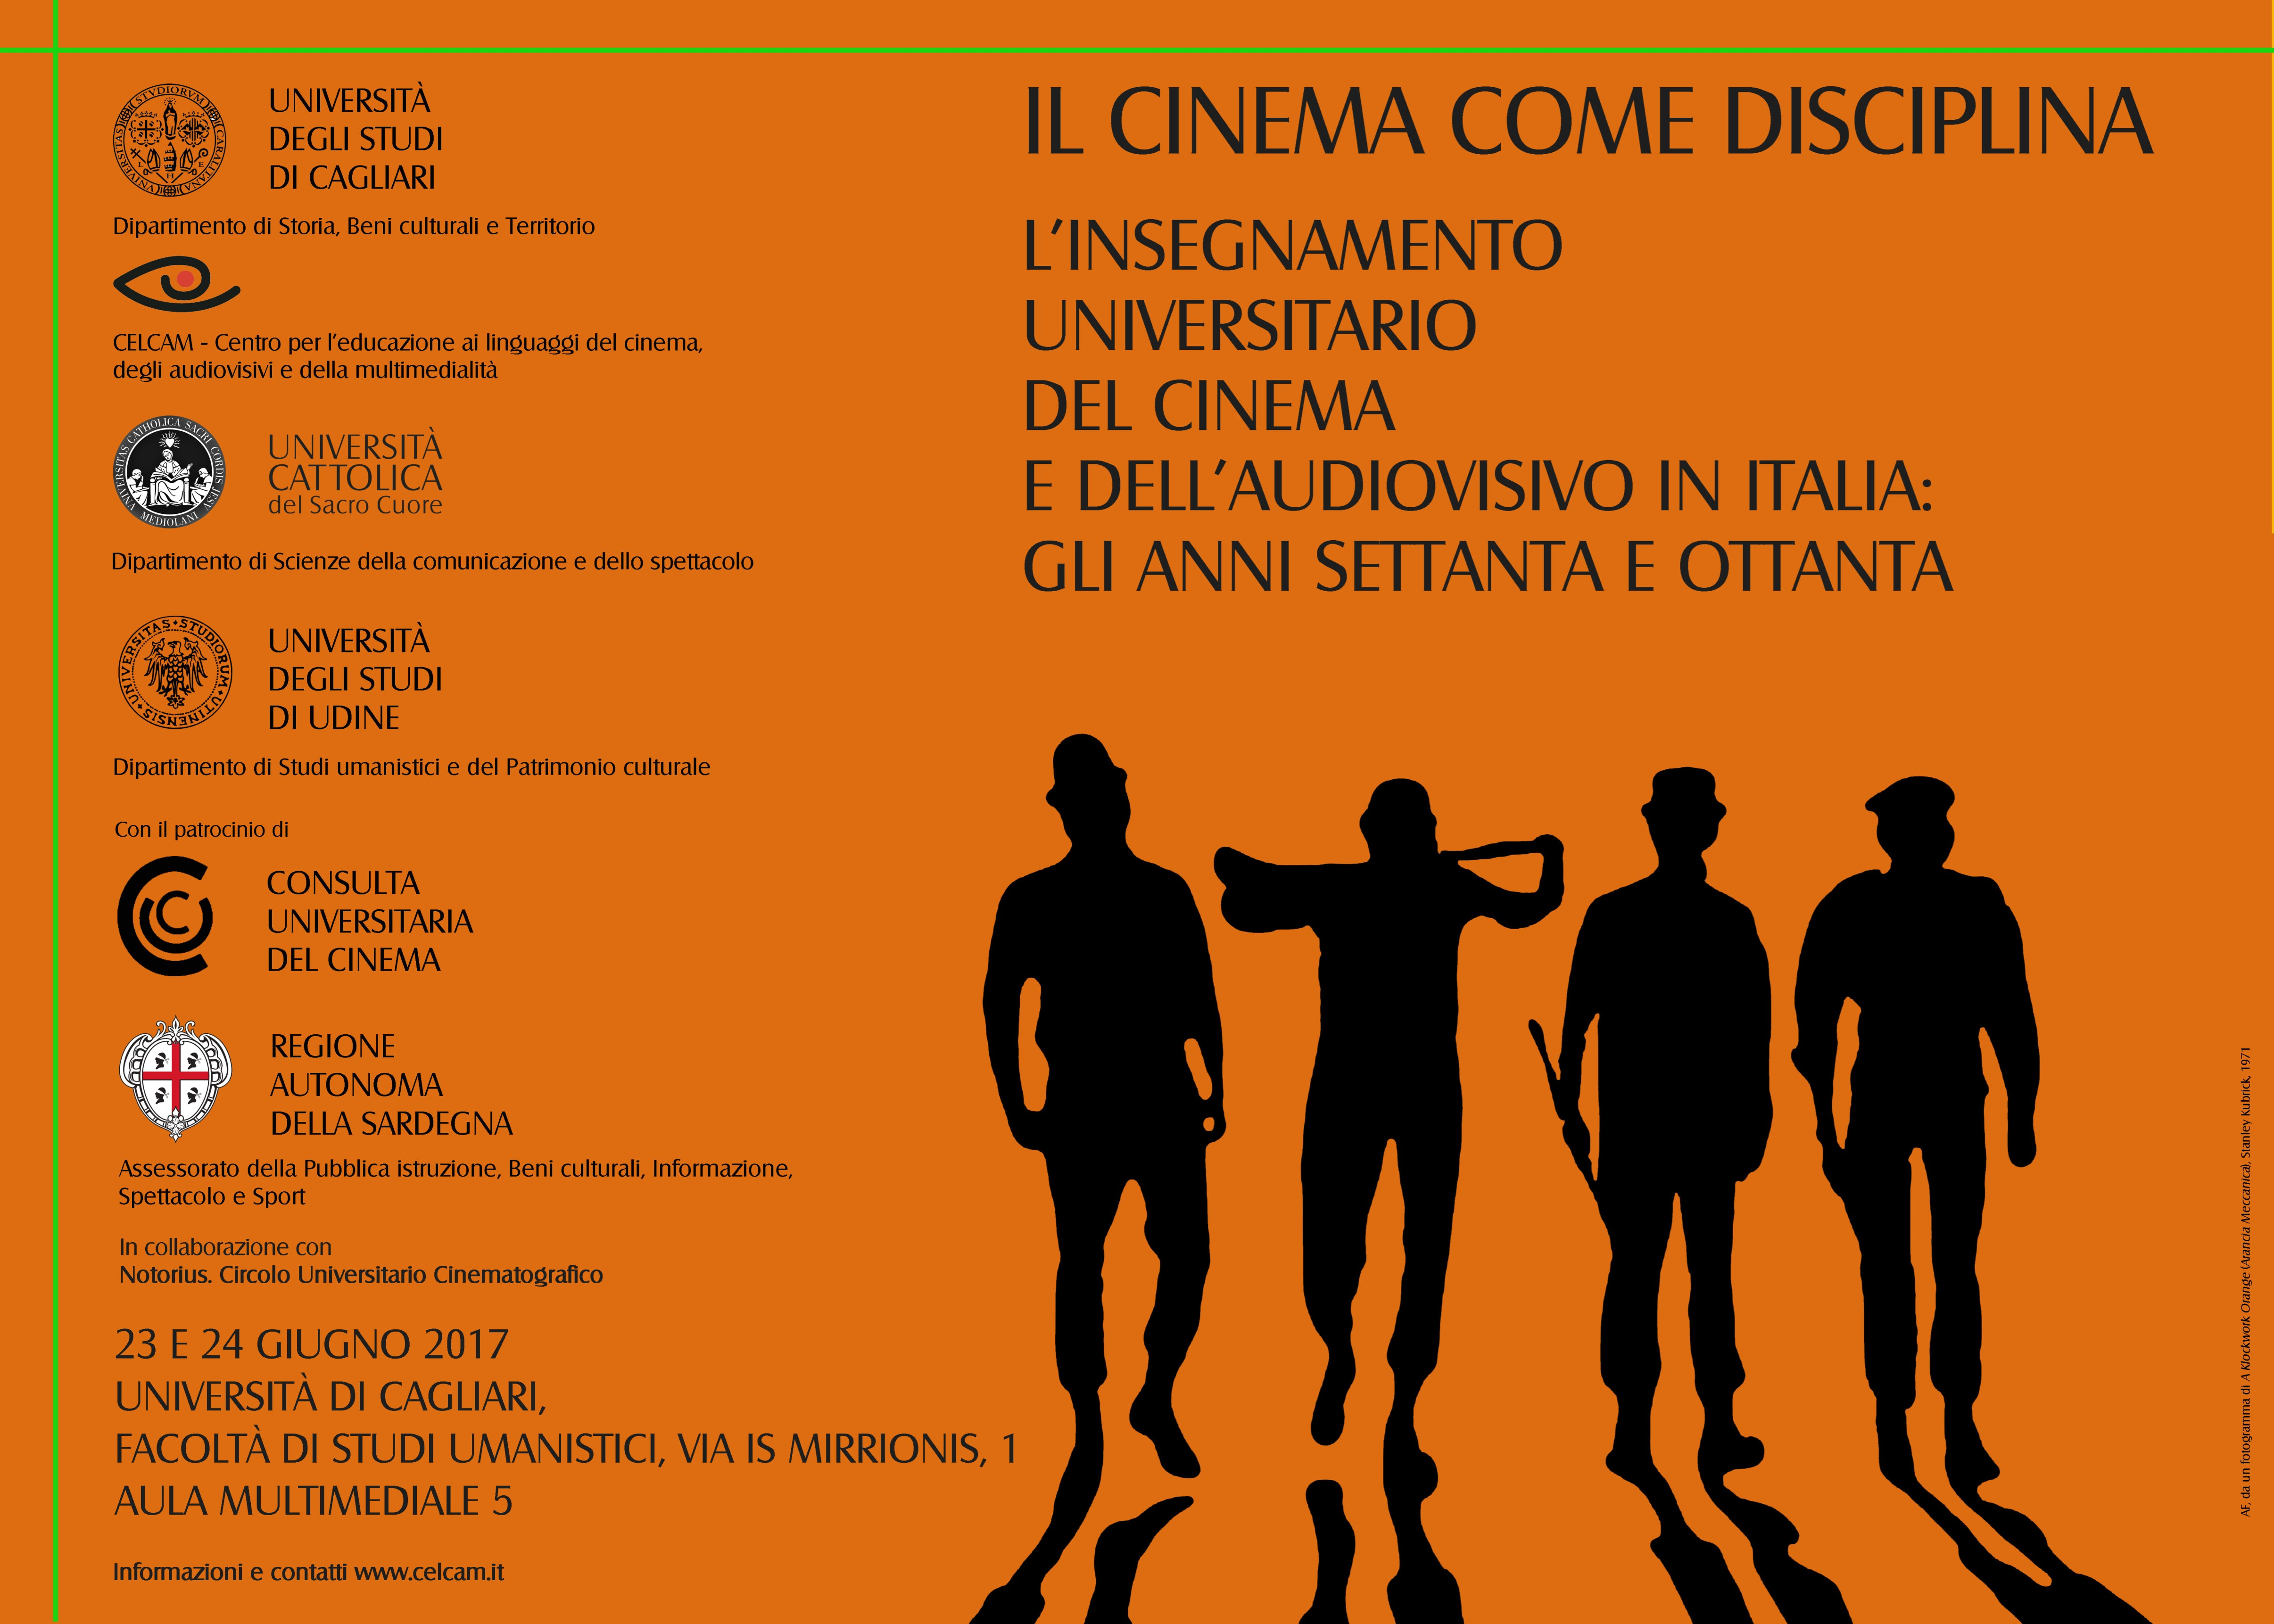 IL CINEMA COME DISCIPLINA